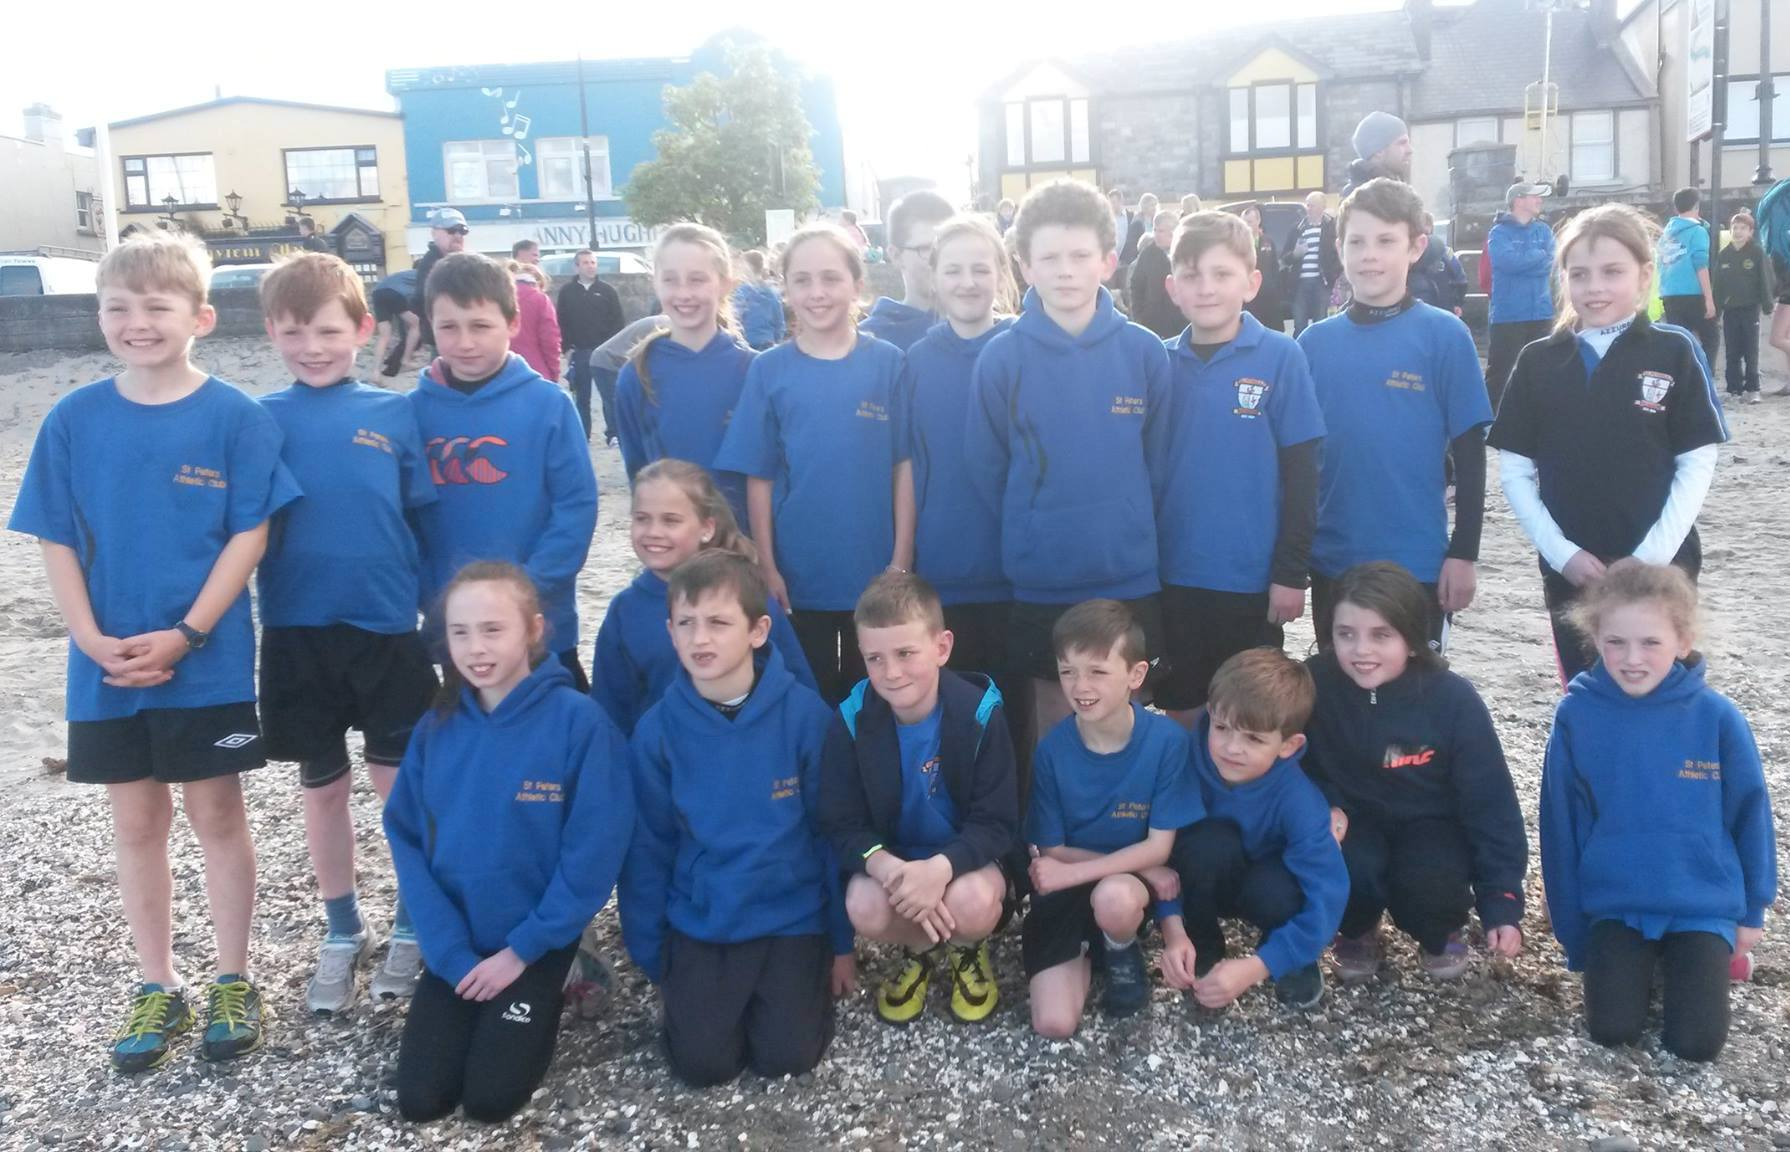 St Peter's AC athletes at Blackrock AC Beach Races (Blackrock, May 2015)